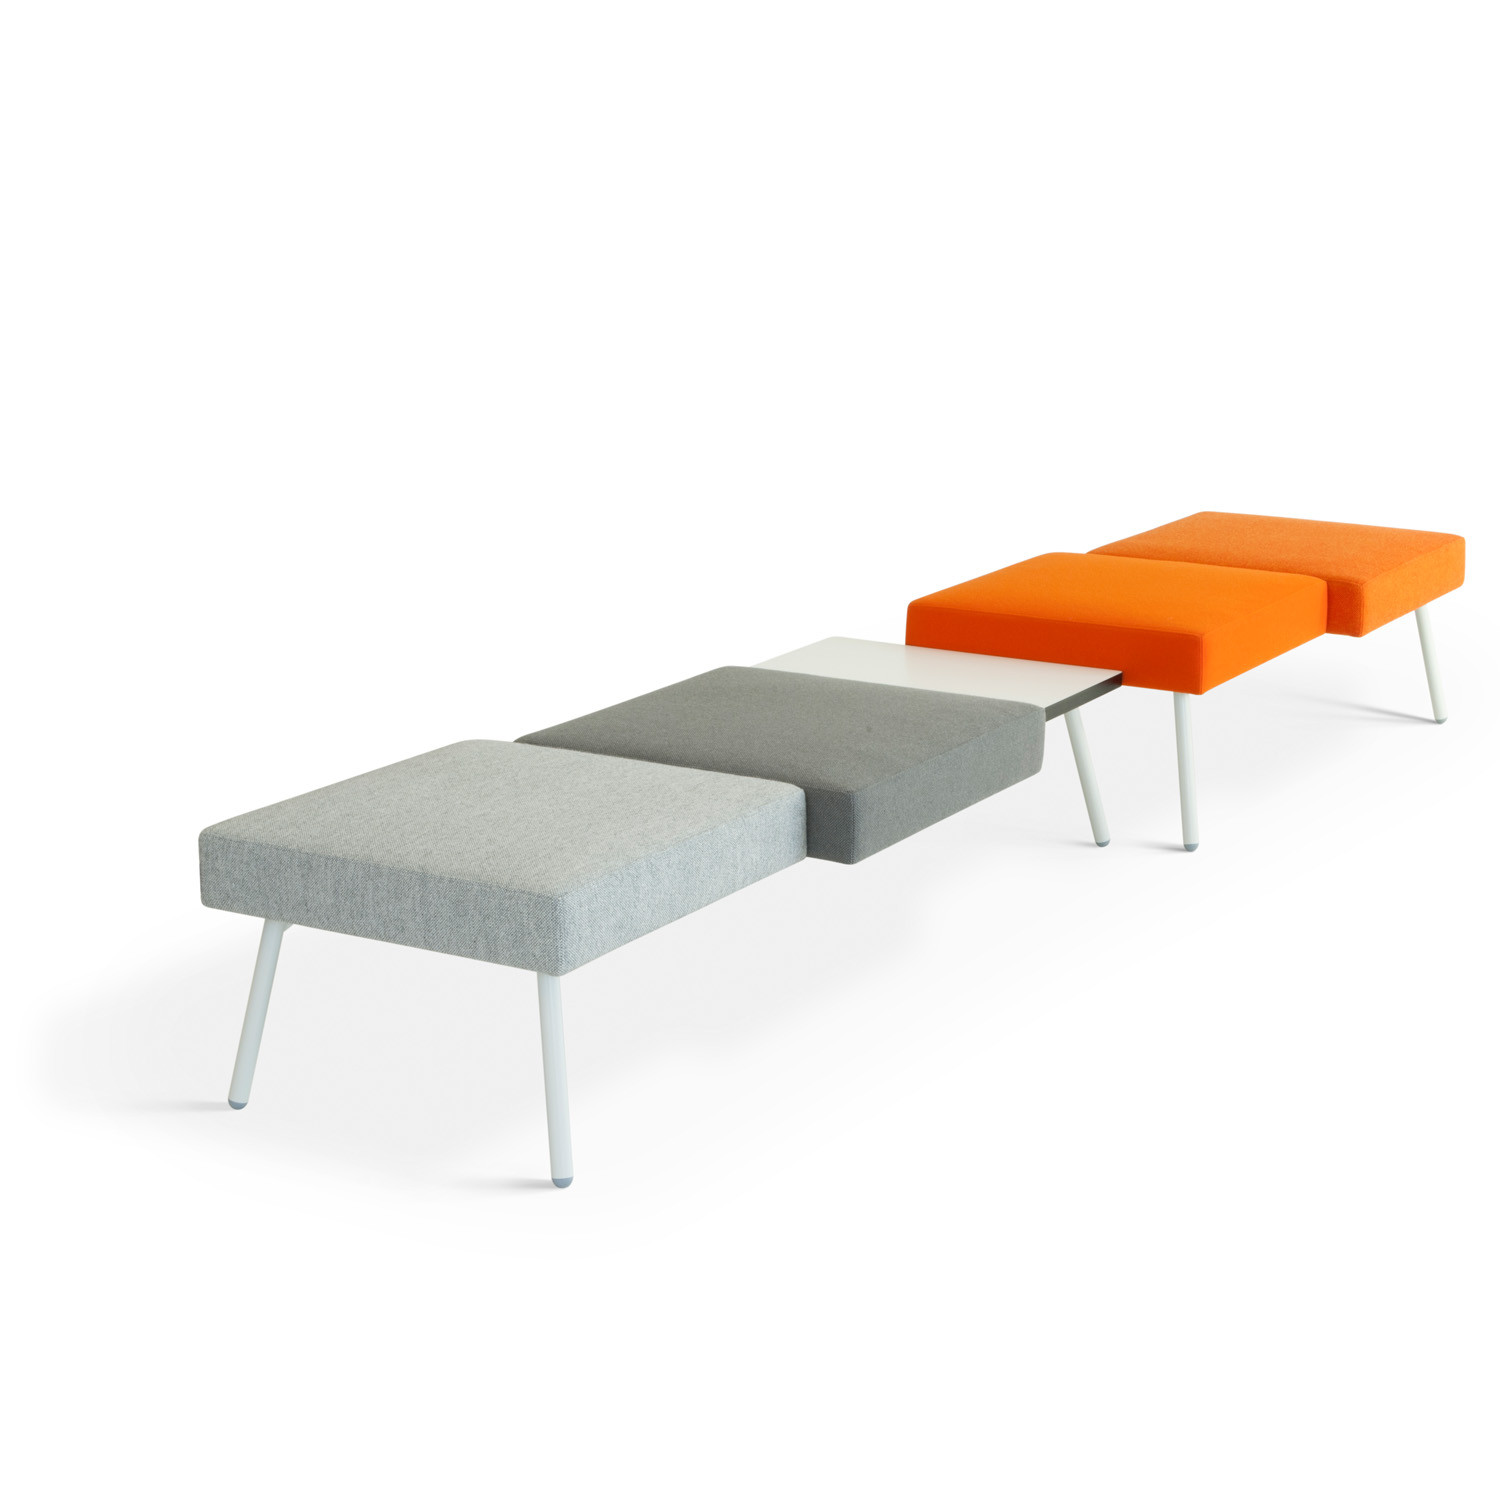 Hitch Mylius HM101 Bench Seating